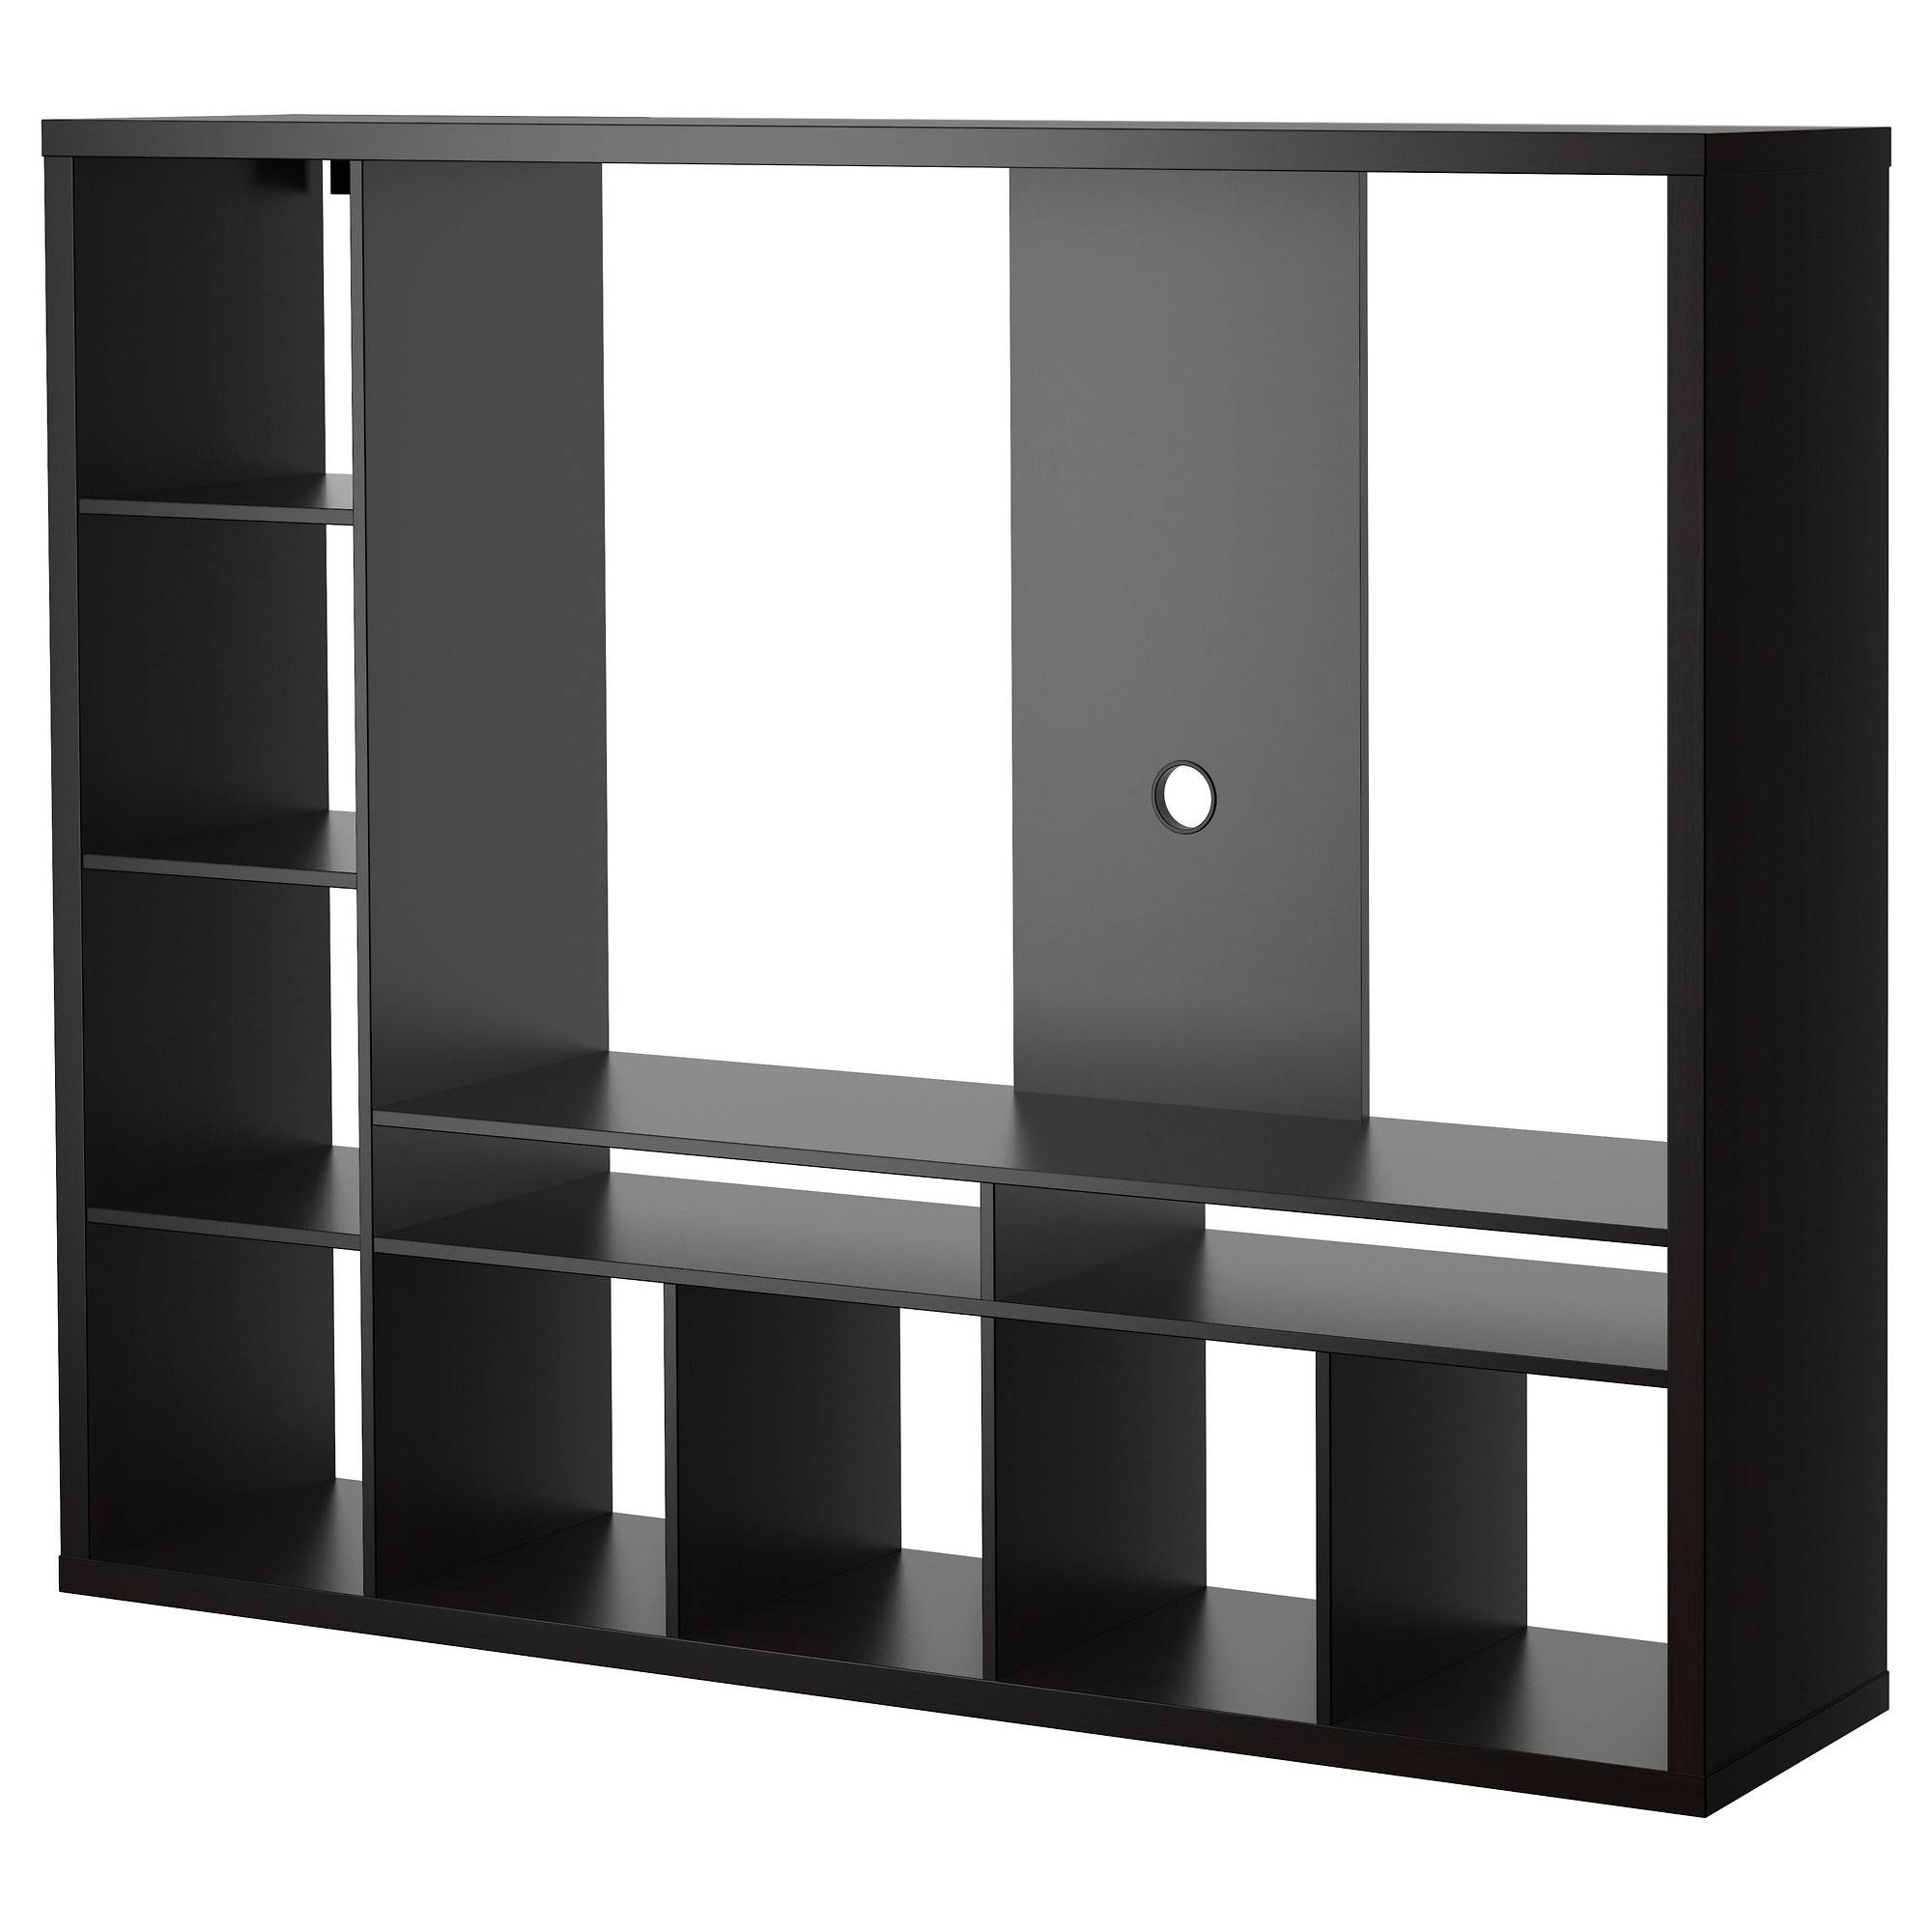 Tv Stands & Entertainment Centers - Ikea throughout Storage Tv Stands (Image 10 of 15)